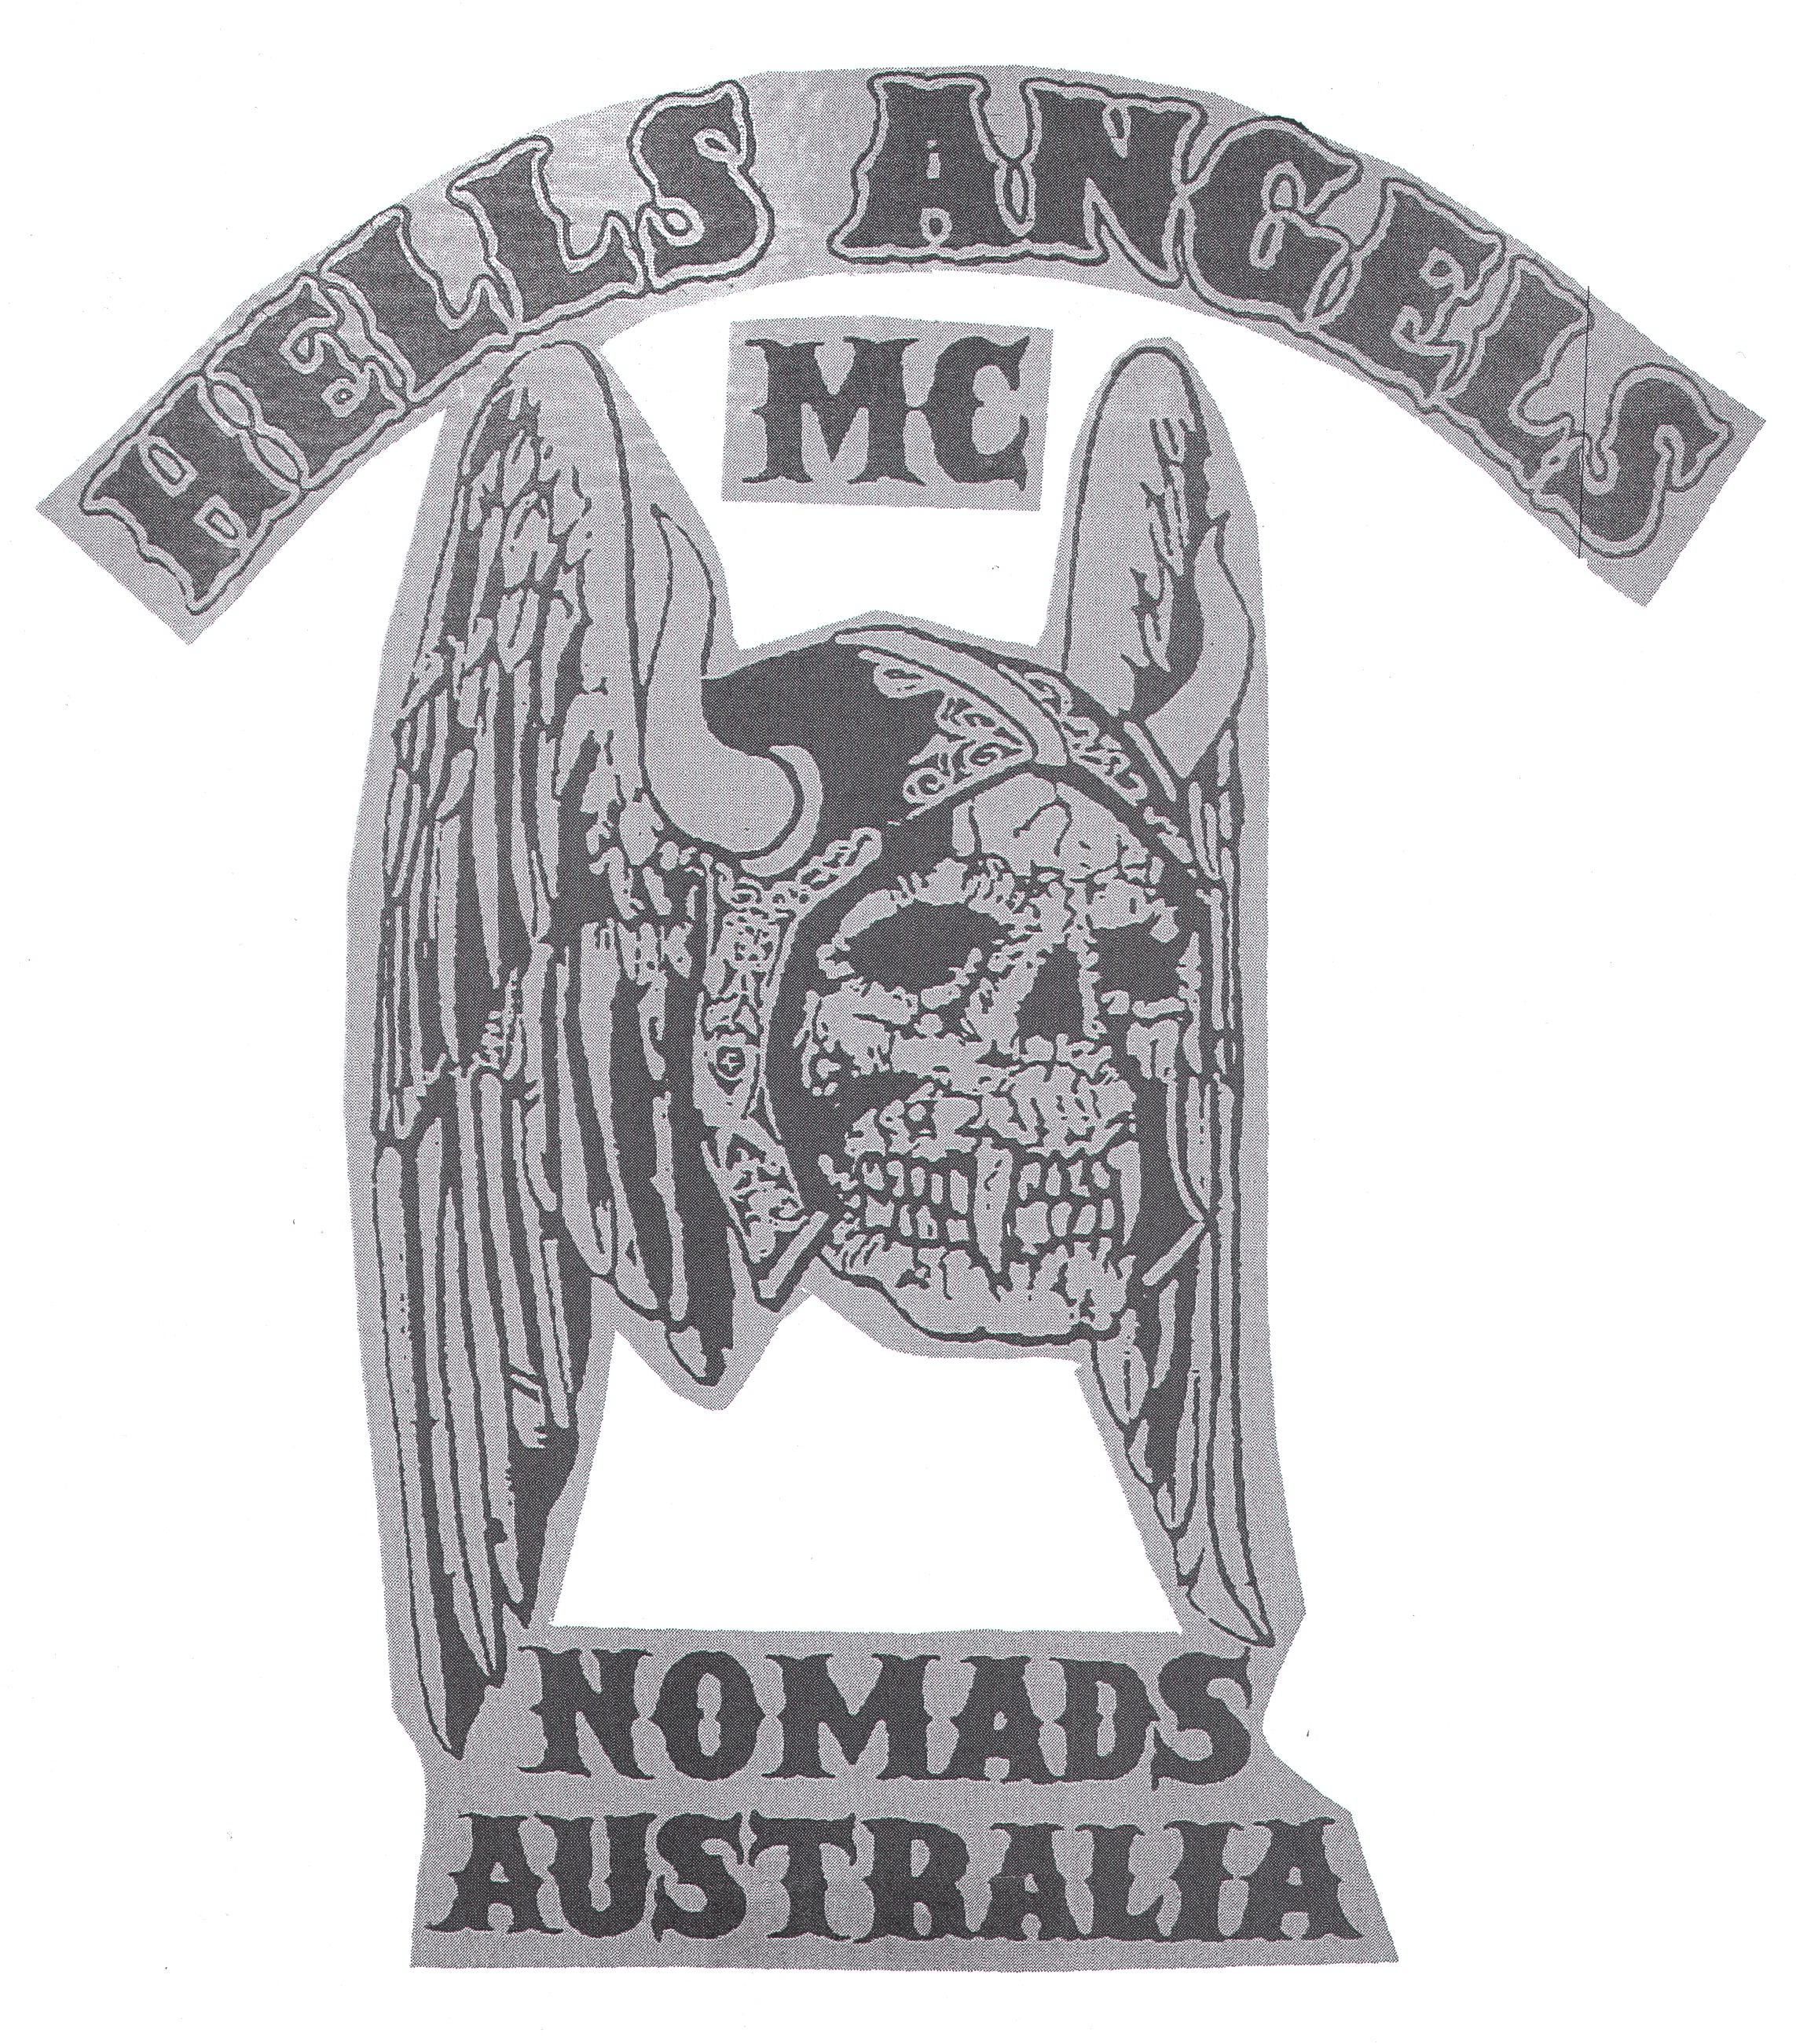 Nomads mc Logo Hells Angels mc Nomads